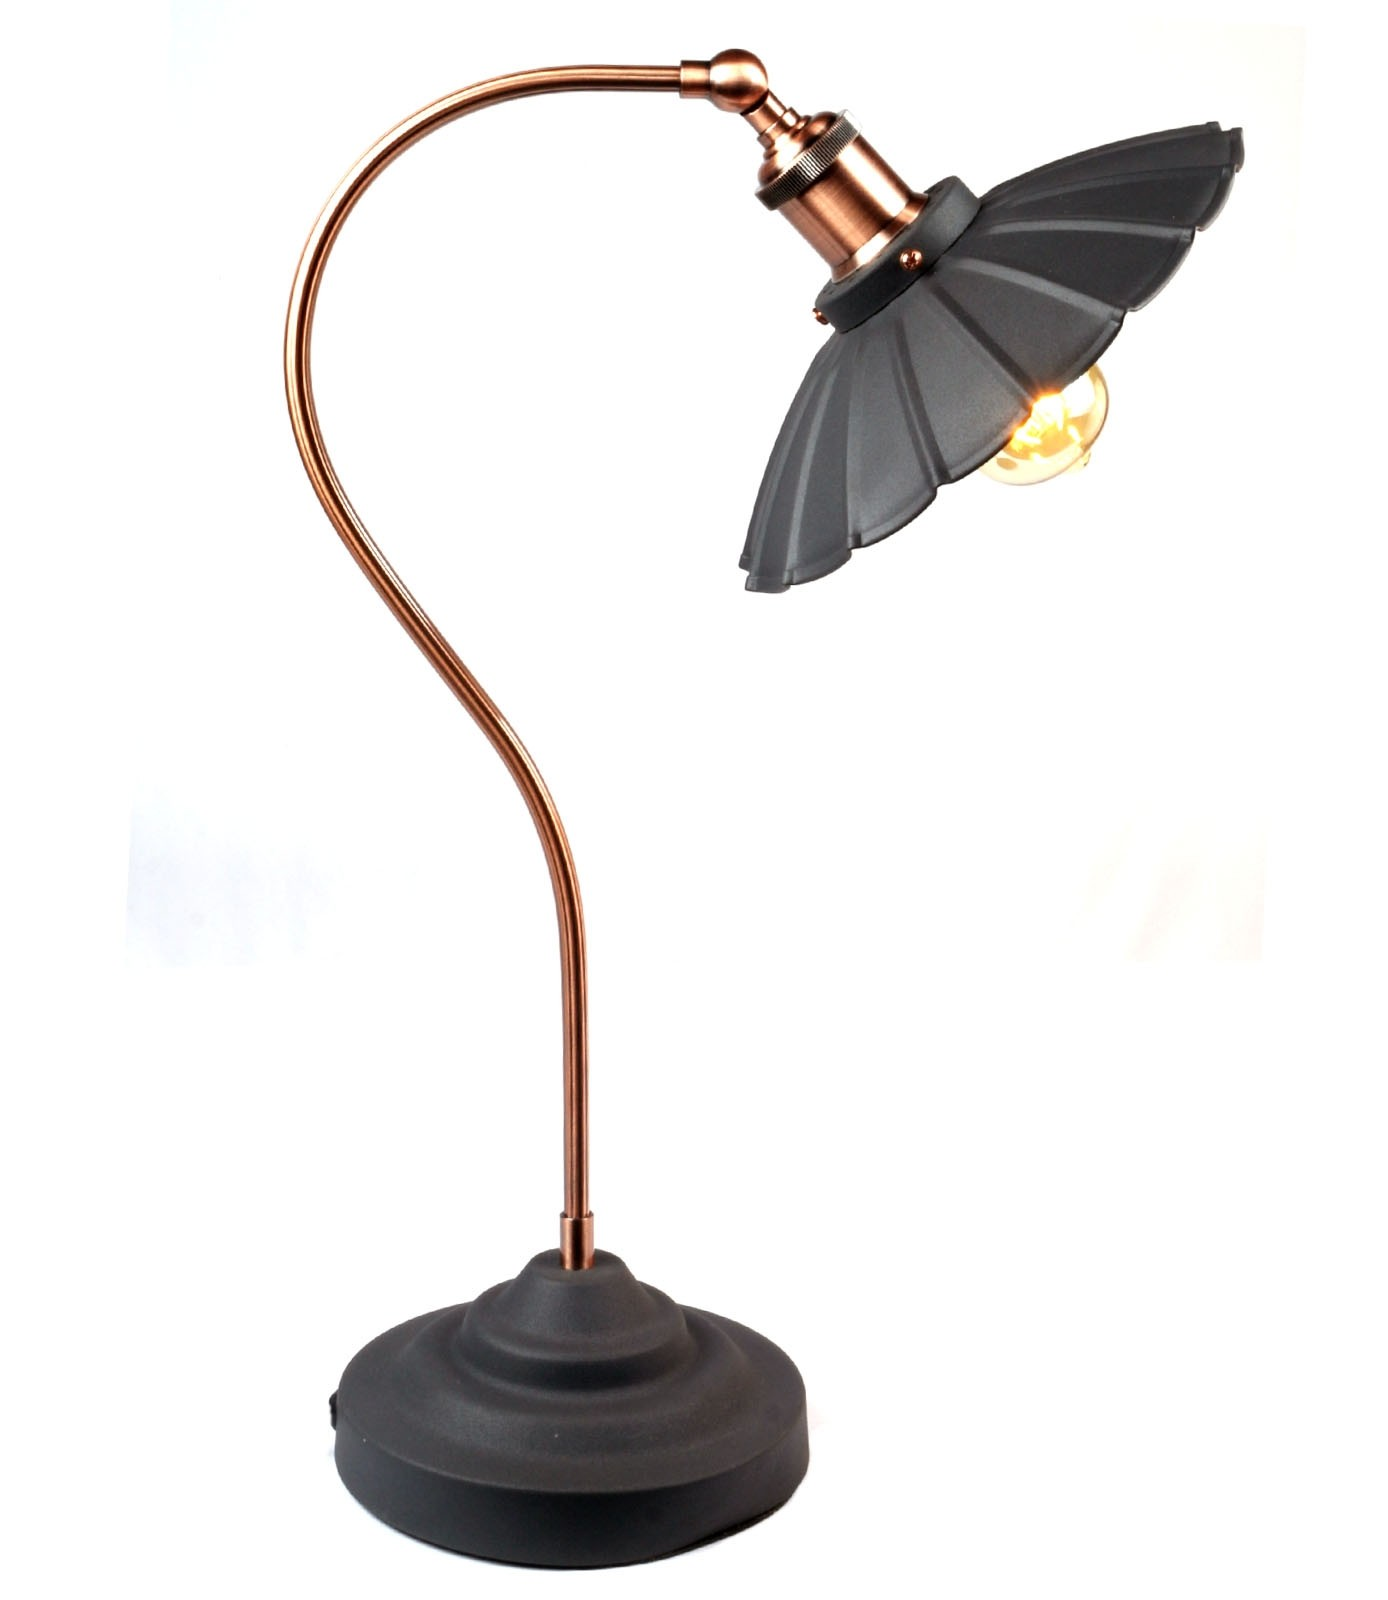 Daisy Lamp Matt Black - Copper Plated Arm (Bulbs not included)